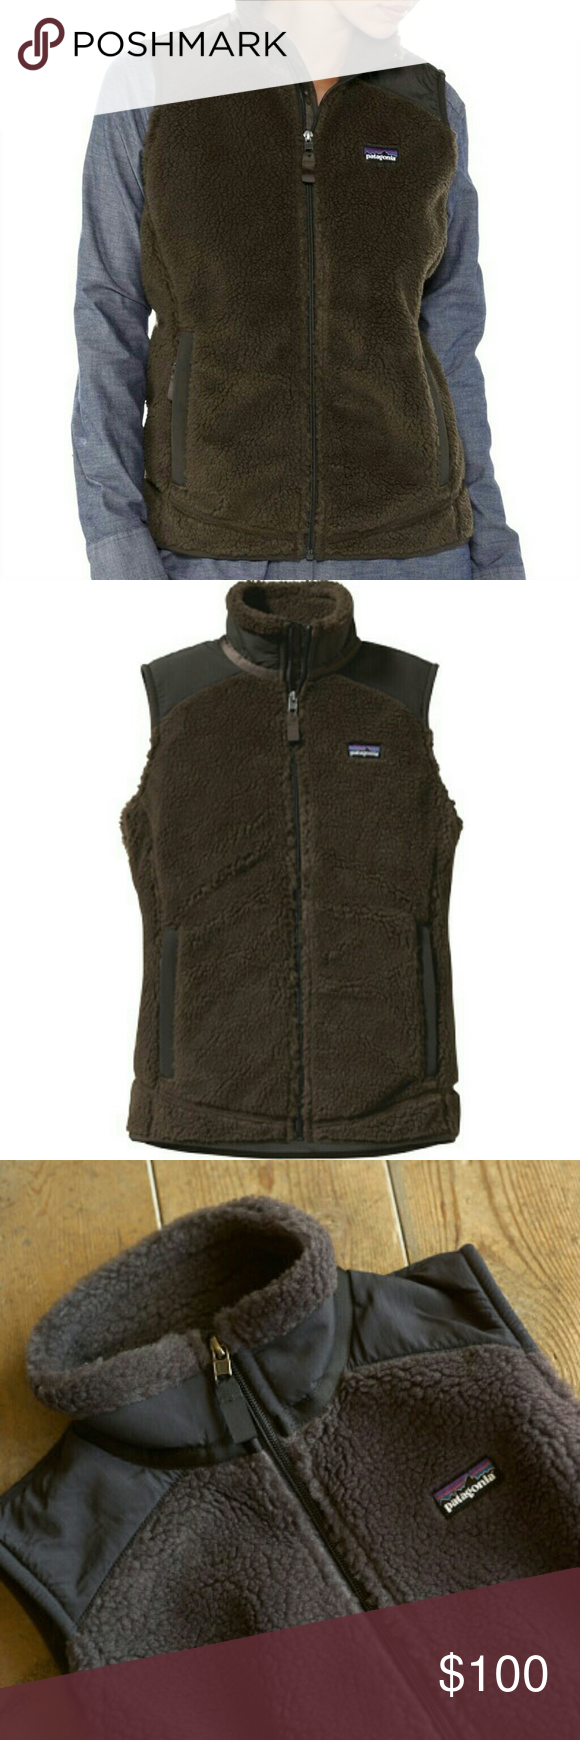 Patagonia Women's Retro-X Vest Classic retro-x vest from Patagonia. It is very warm and wind proof. They have changed the style with so this exact one is no longer available from Patagonia. Perfect brand new condition, only worn a few times. Patagonia Jackets & Coats Vests